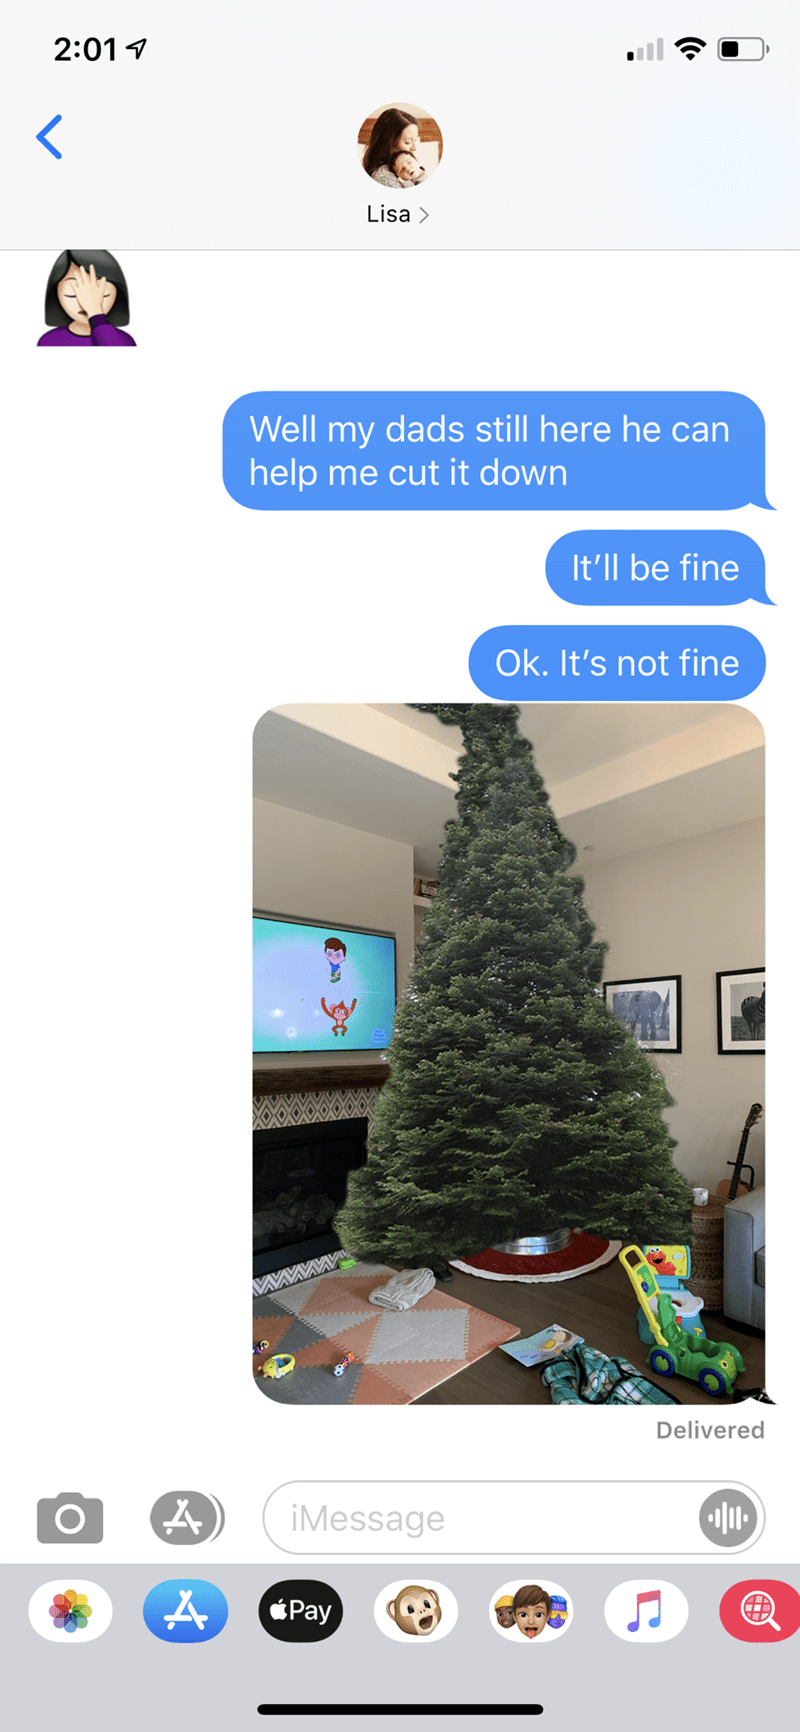 Christmas tree - 2:01 1 Lisa > Well my dads still here he can help me cut it down It'll be fine Ok. It's not fine Delivered iMessage Pay